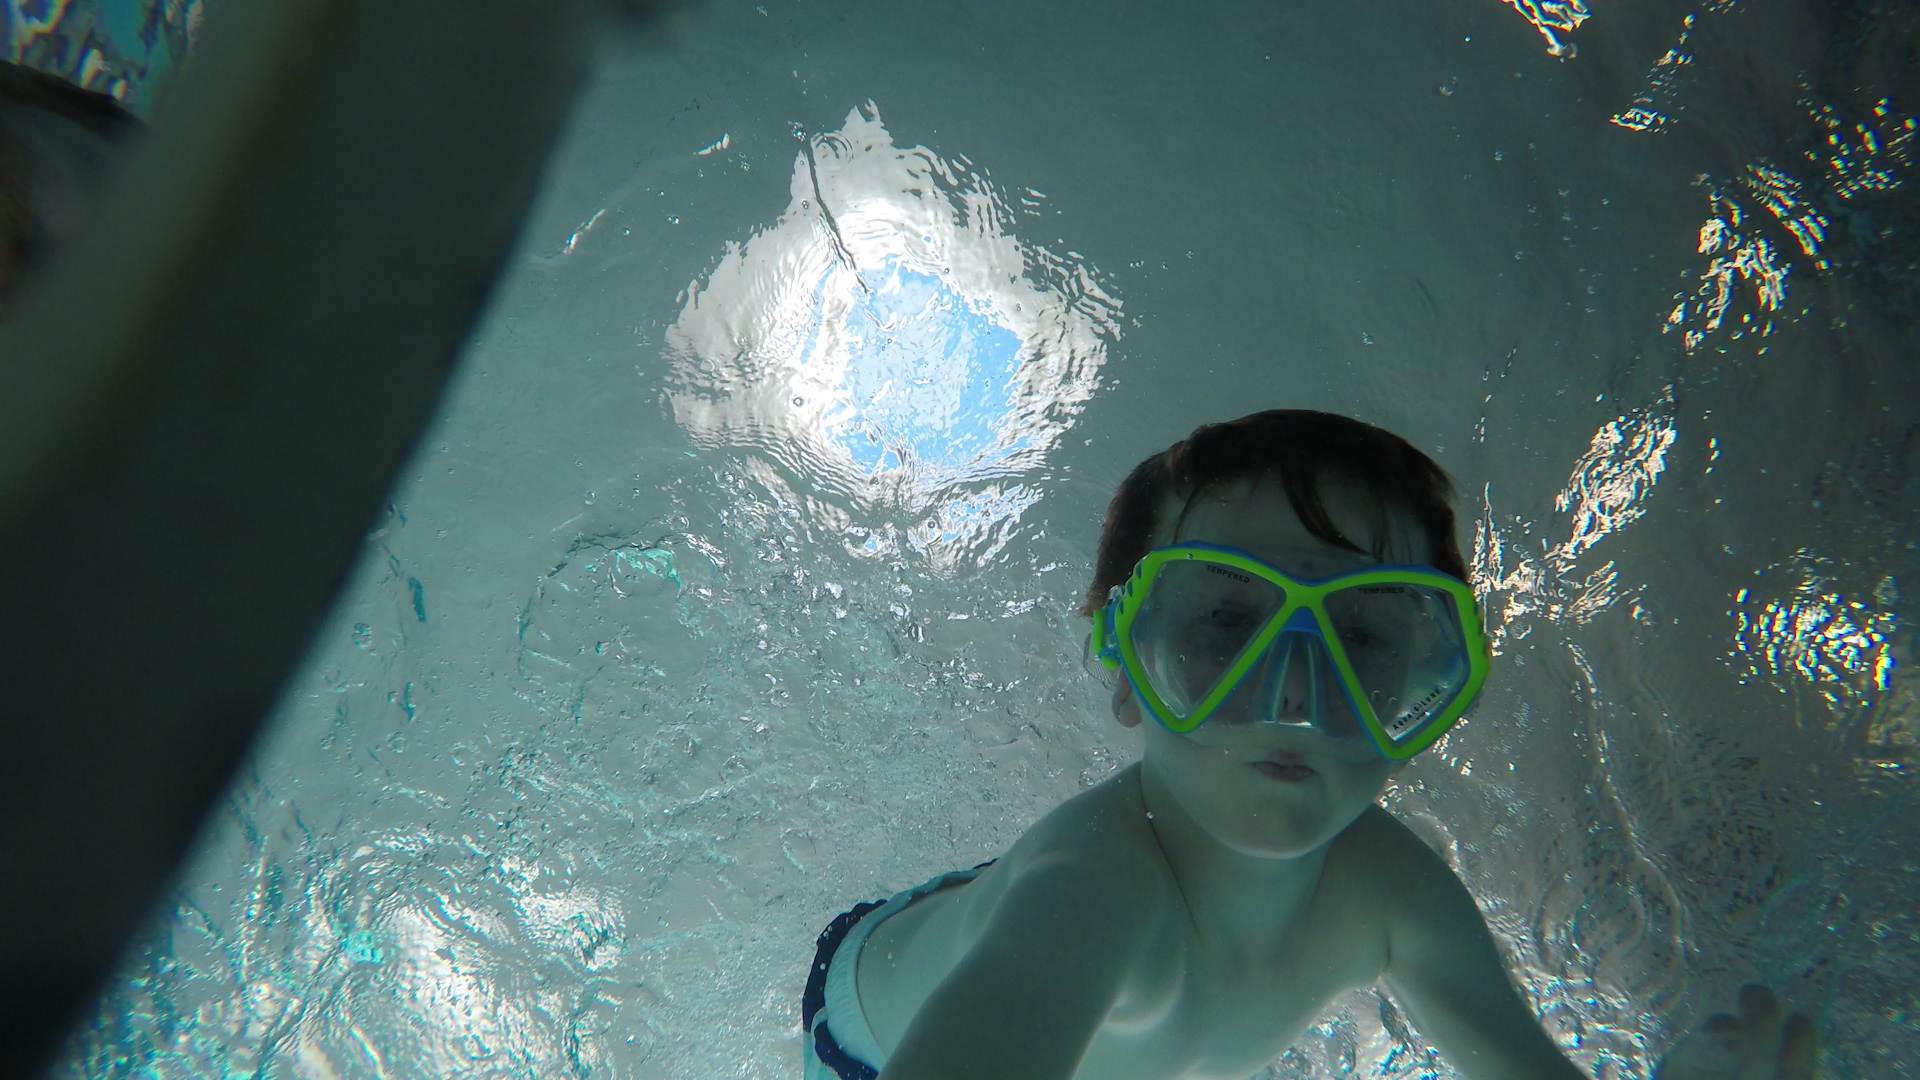 unschooling in the pool